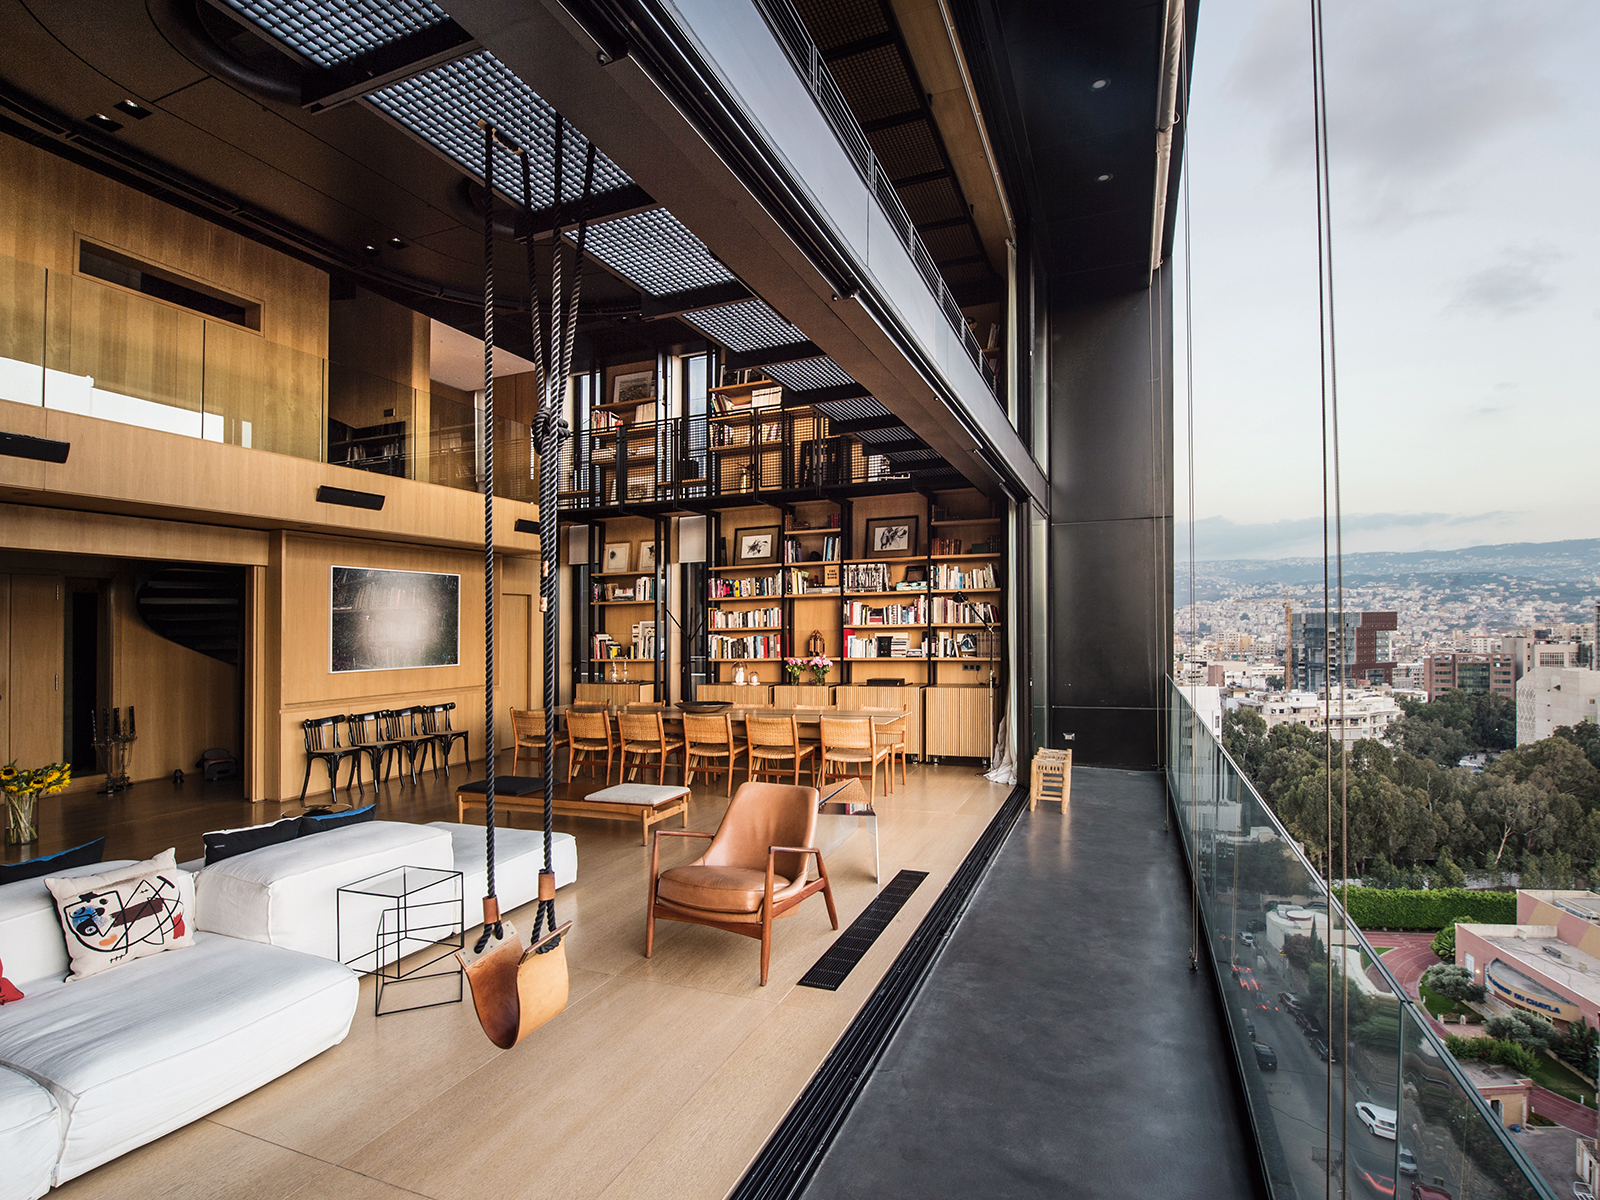 A loft apartment with sweeping glass windows and views onto a city